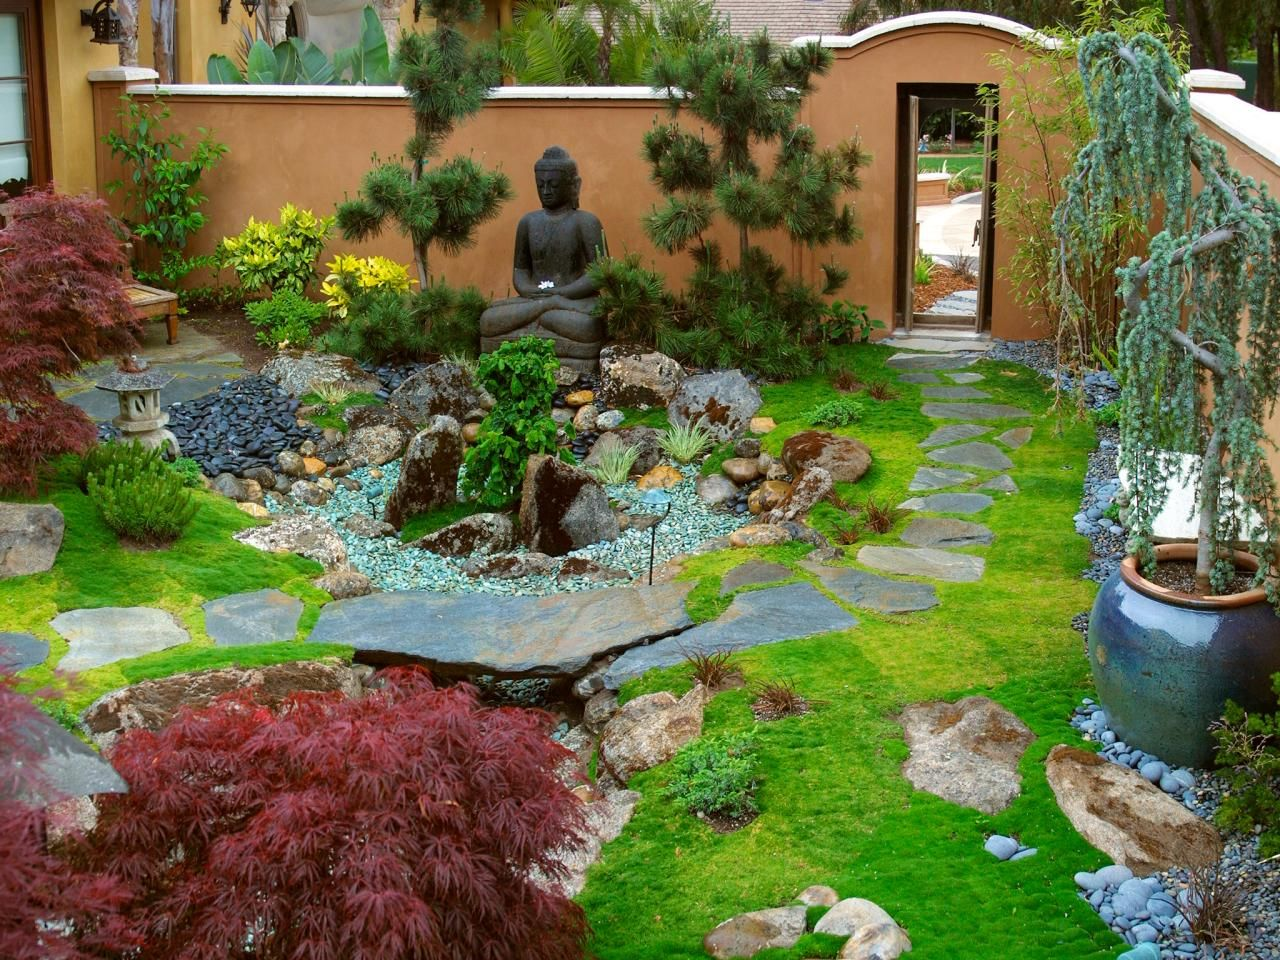 Luxurious Zen Garden Retreat Garden features Gardens and Garden